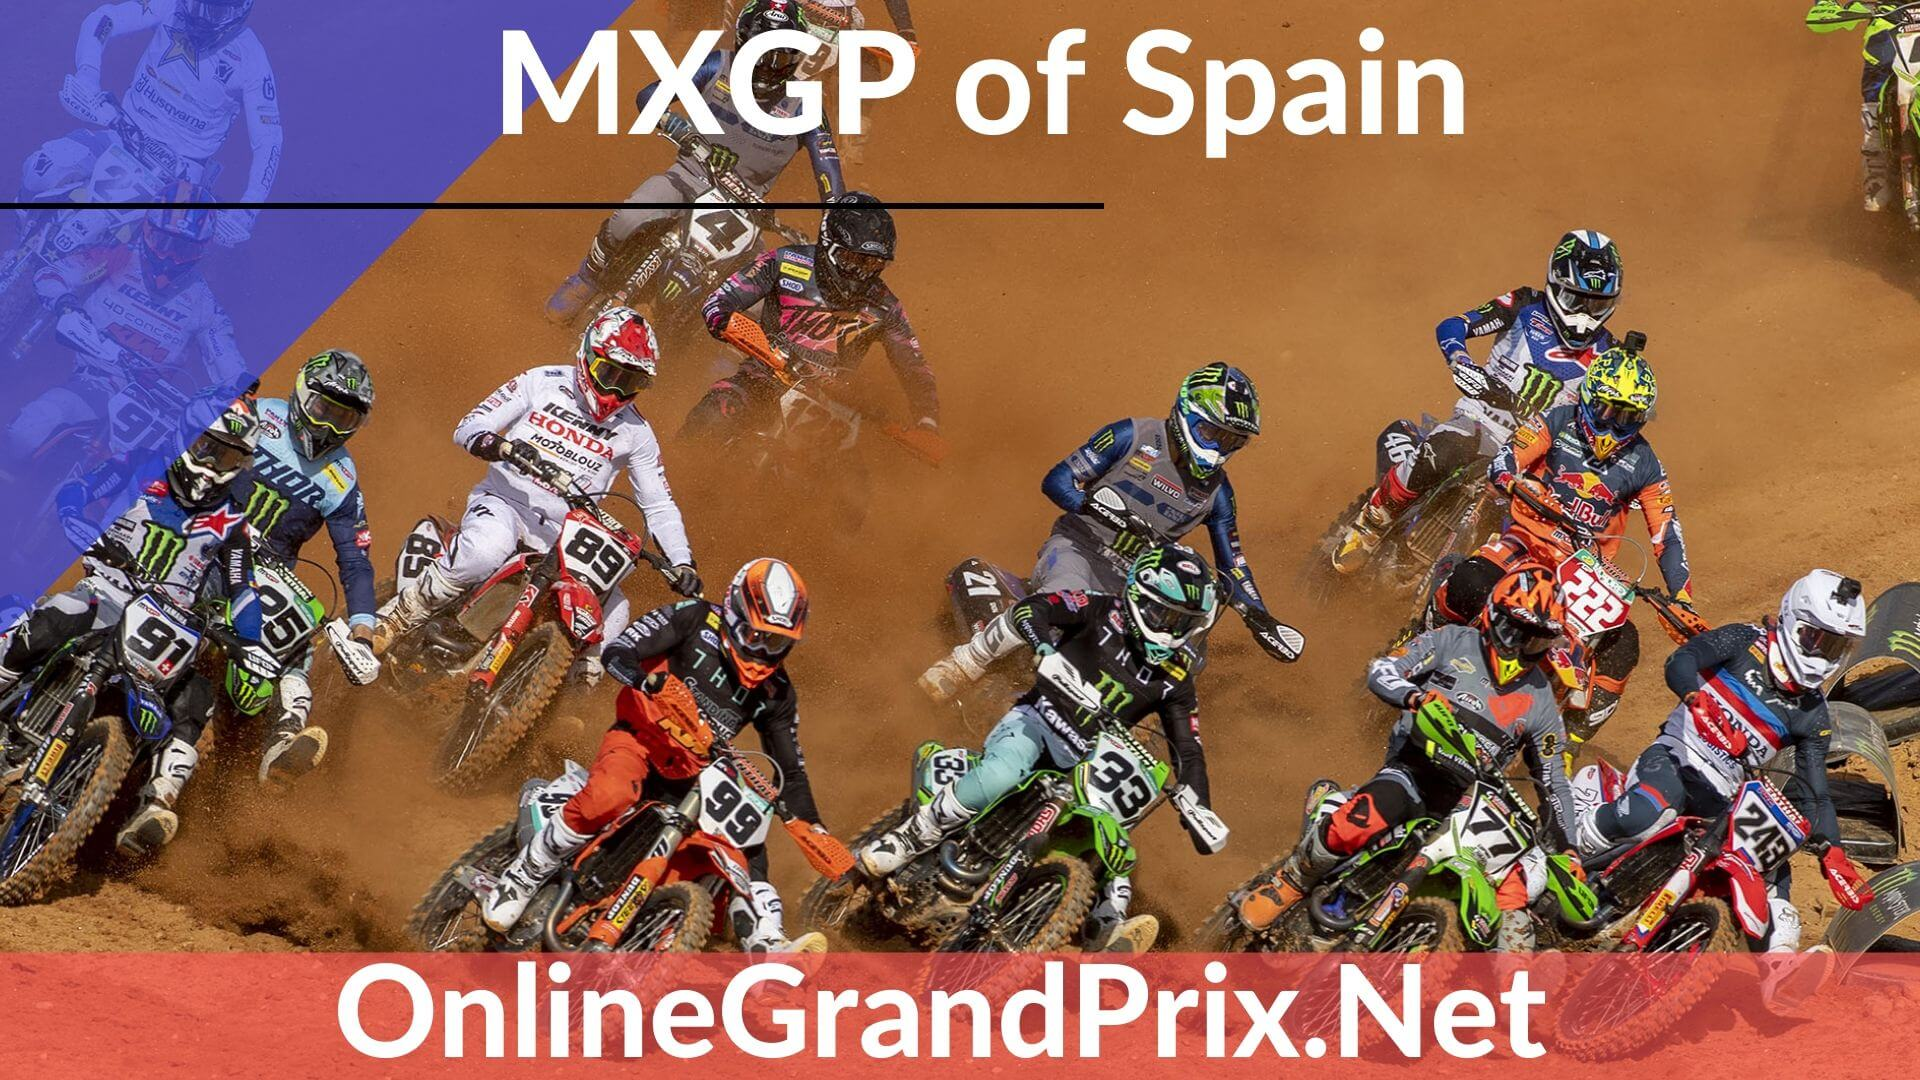 Spain MXGP Live Stream 2020 | FIM MotoCross WC